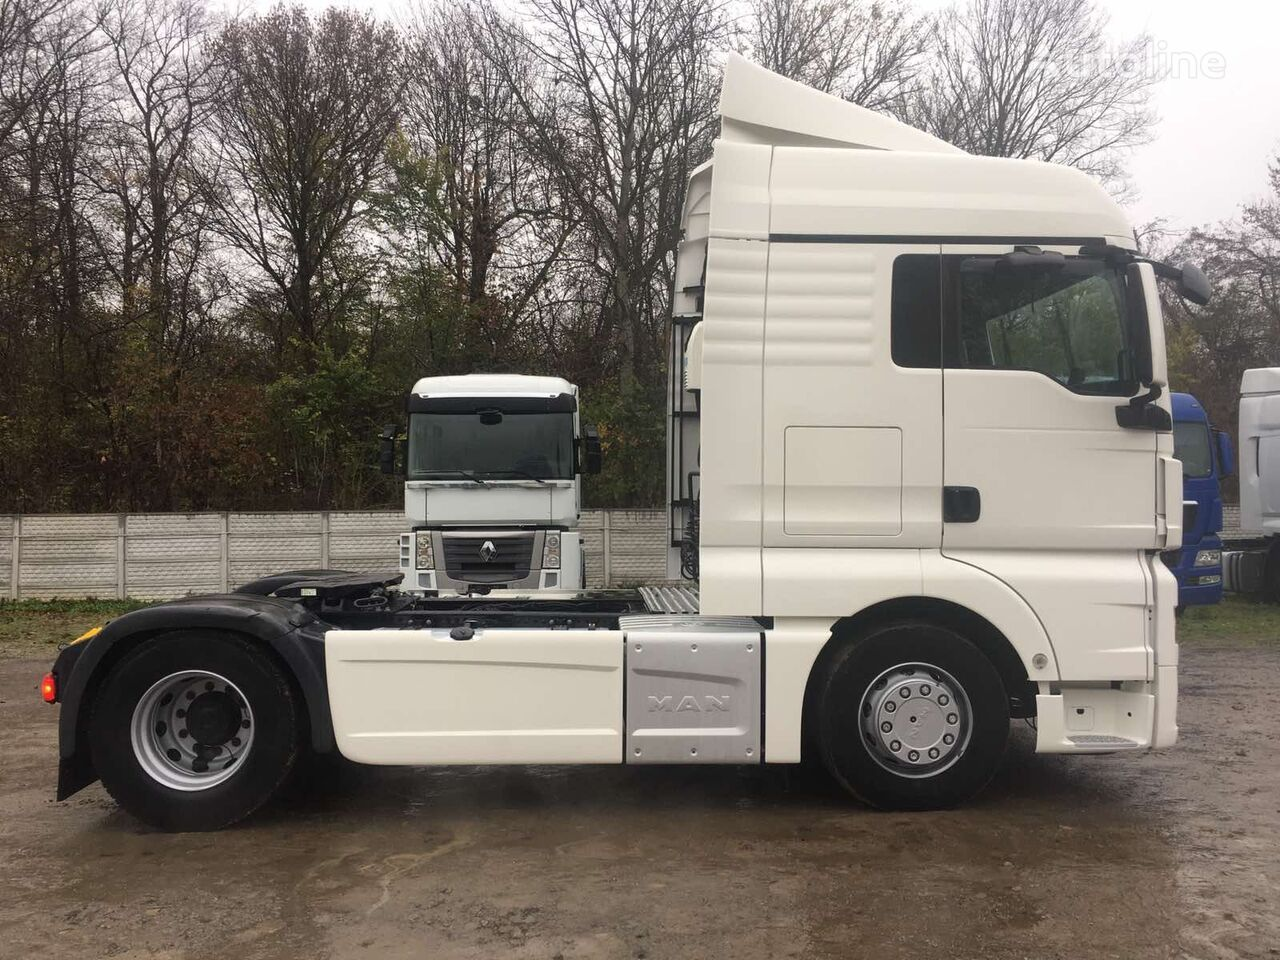 MAN TGX 18.440 v Lizing tractor unit